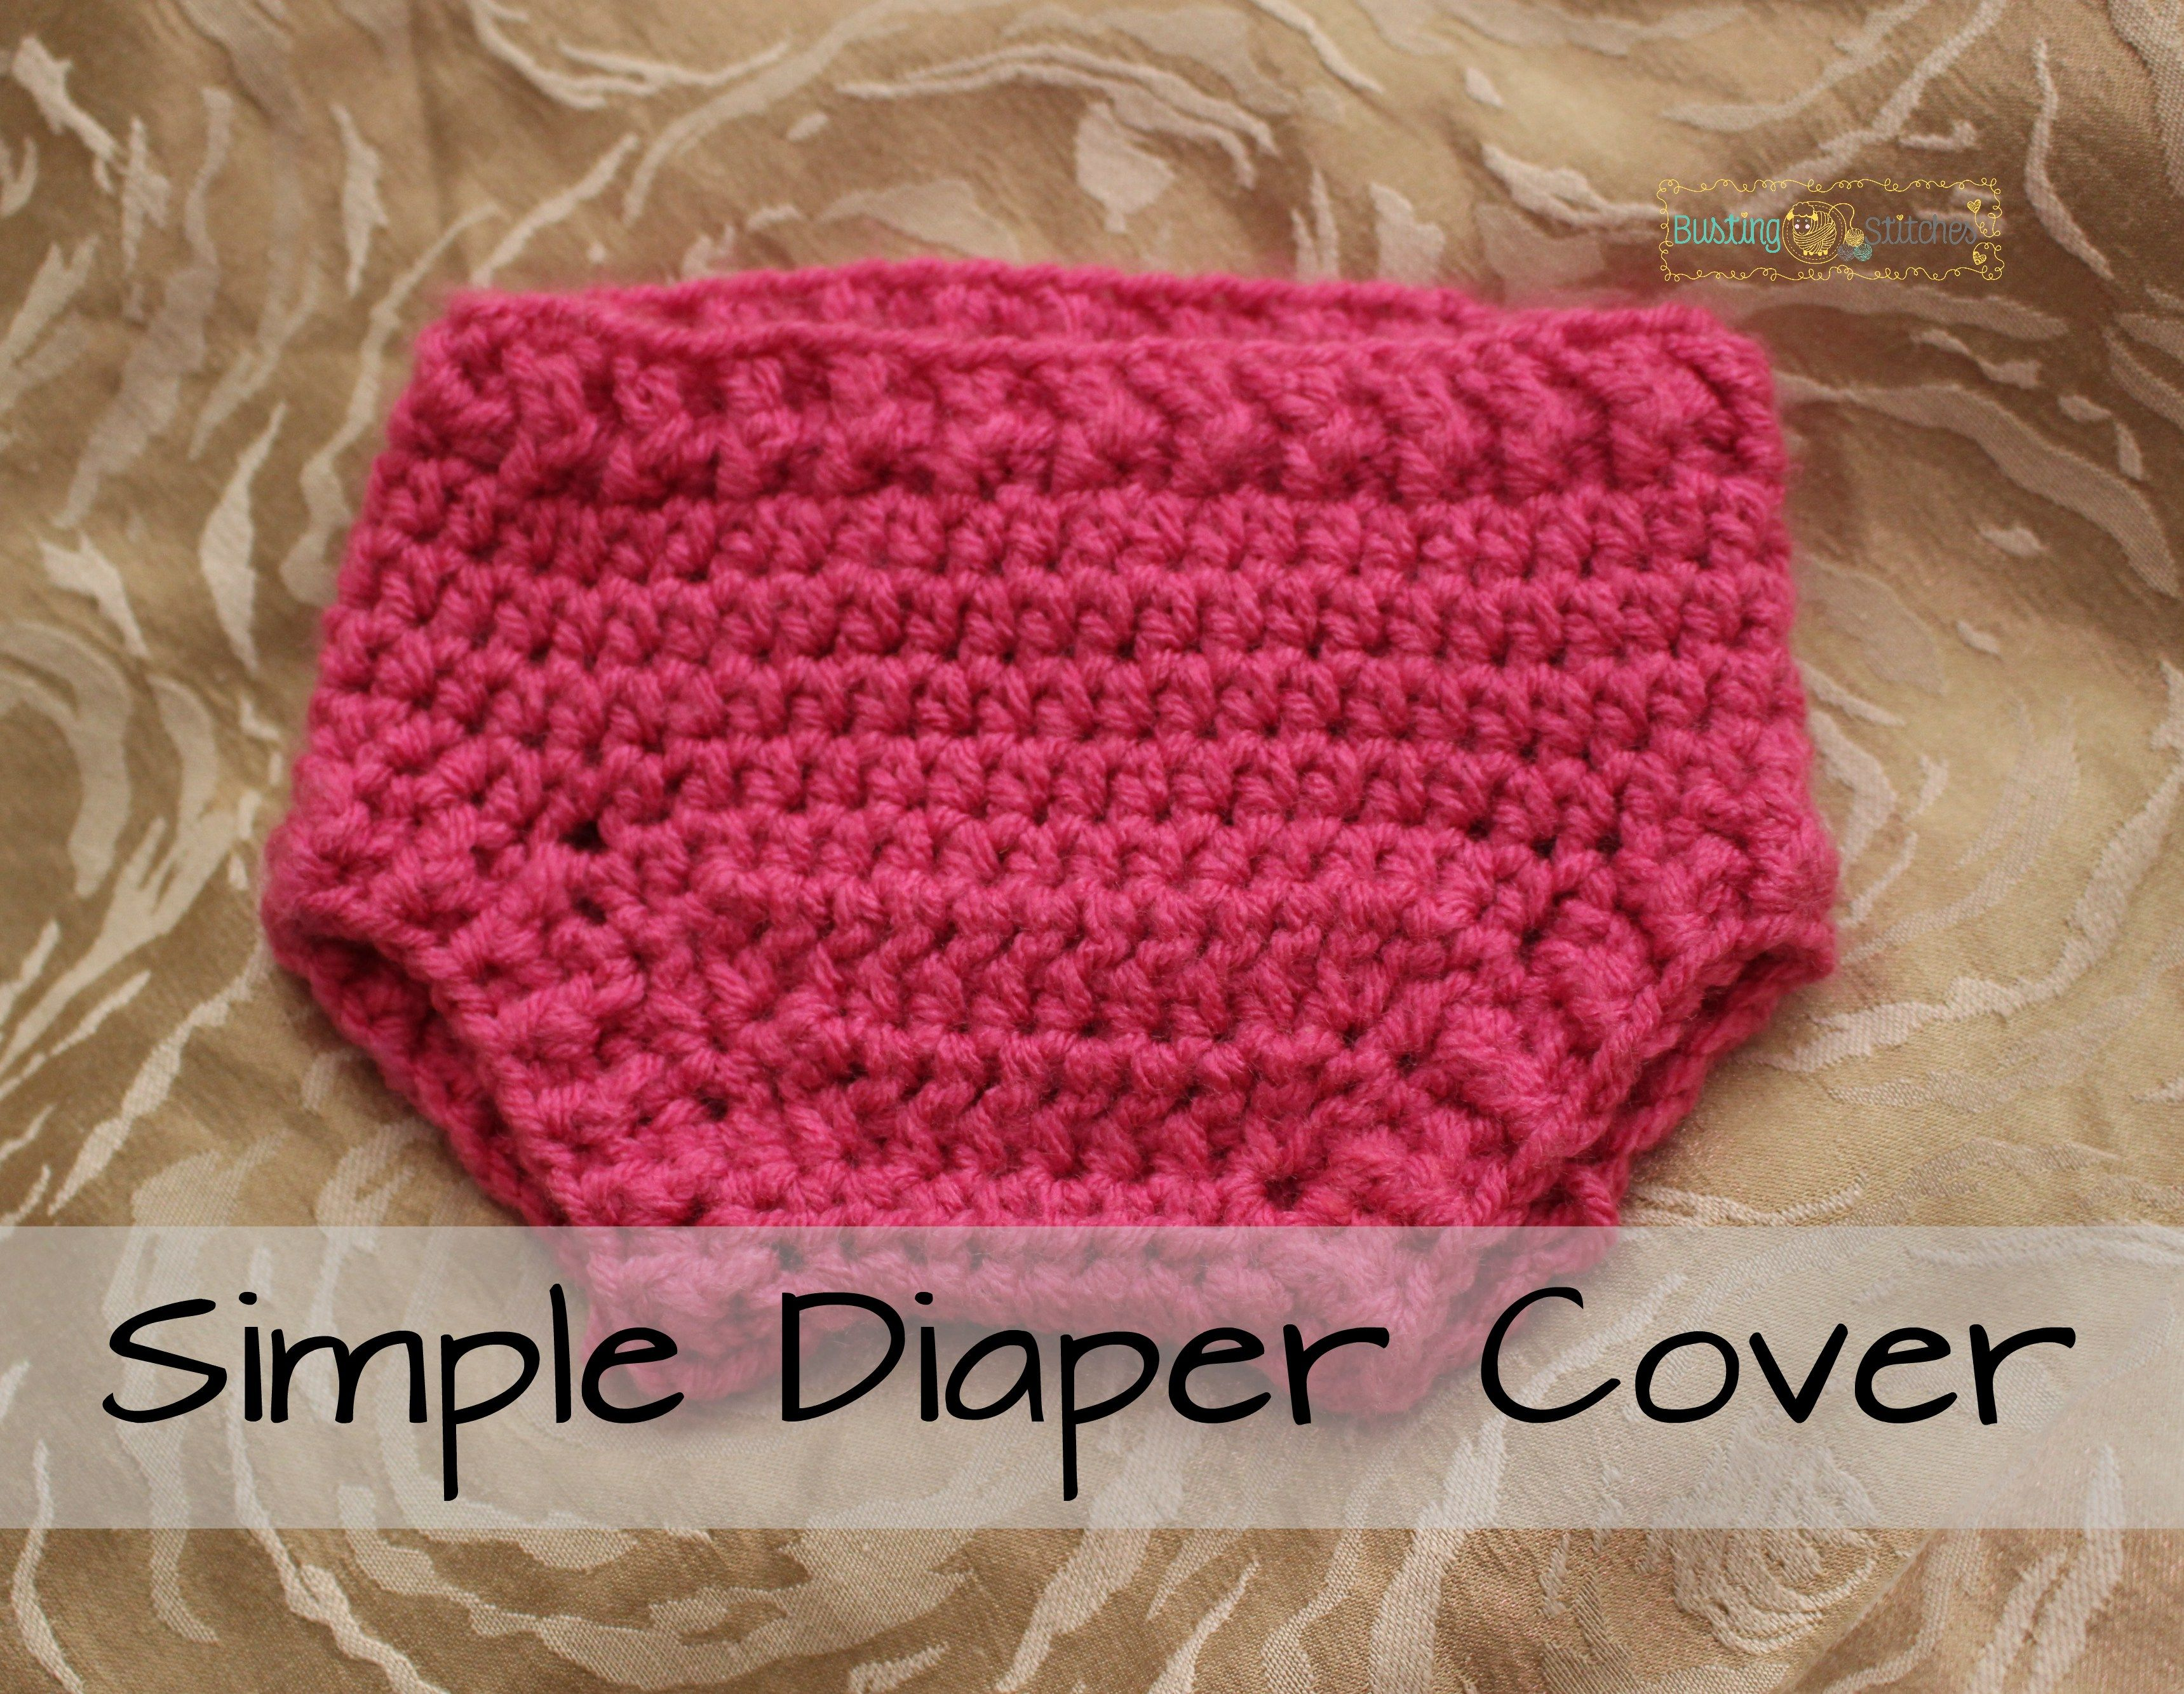 Simple diaper cover free crochet pattern crochet baby simple diaper cover free crochet pattern bankloansurffo Image collections